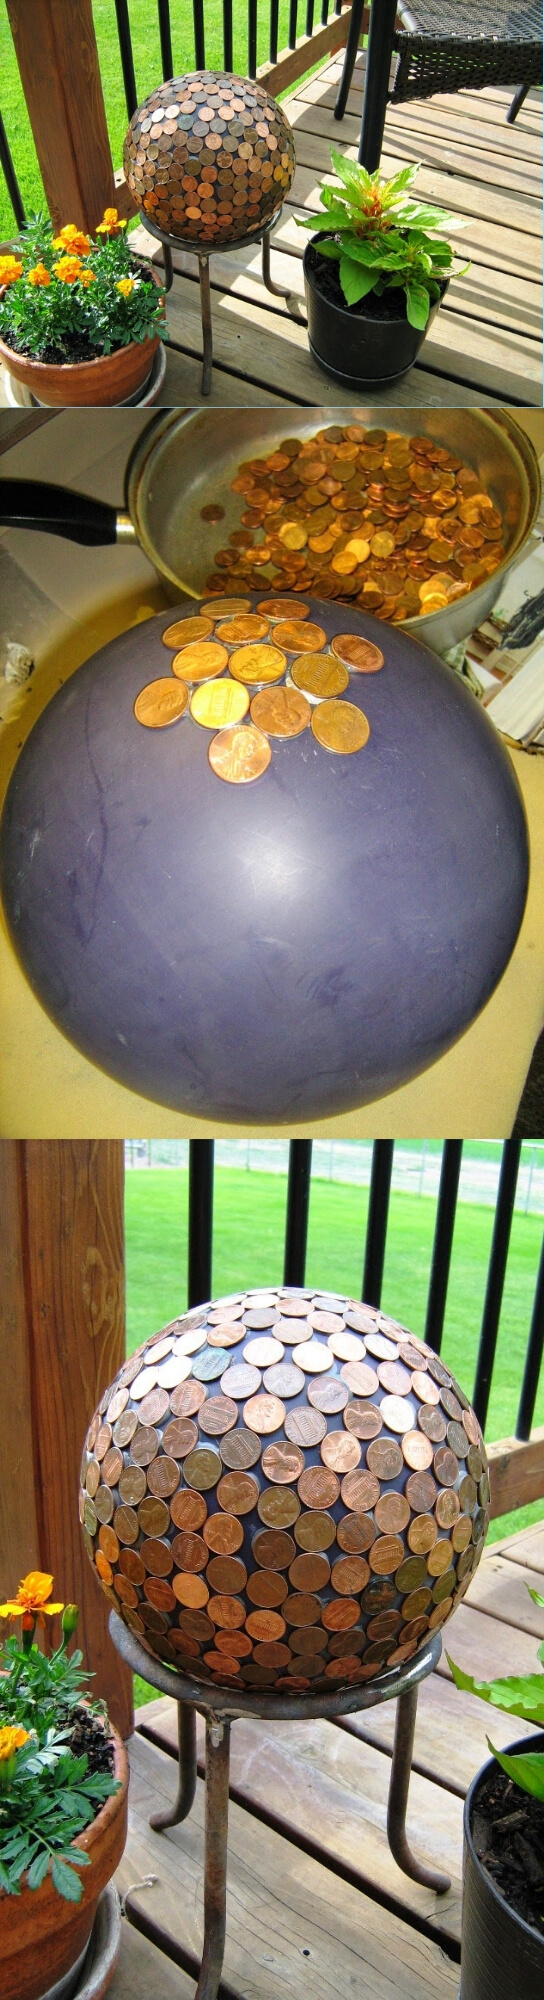 A Penny Ball | Best DIY Garden Globe Ideas & Designs